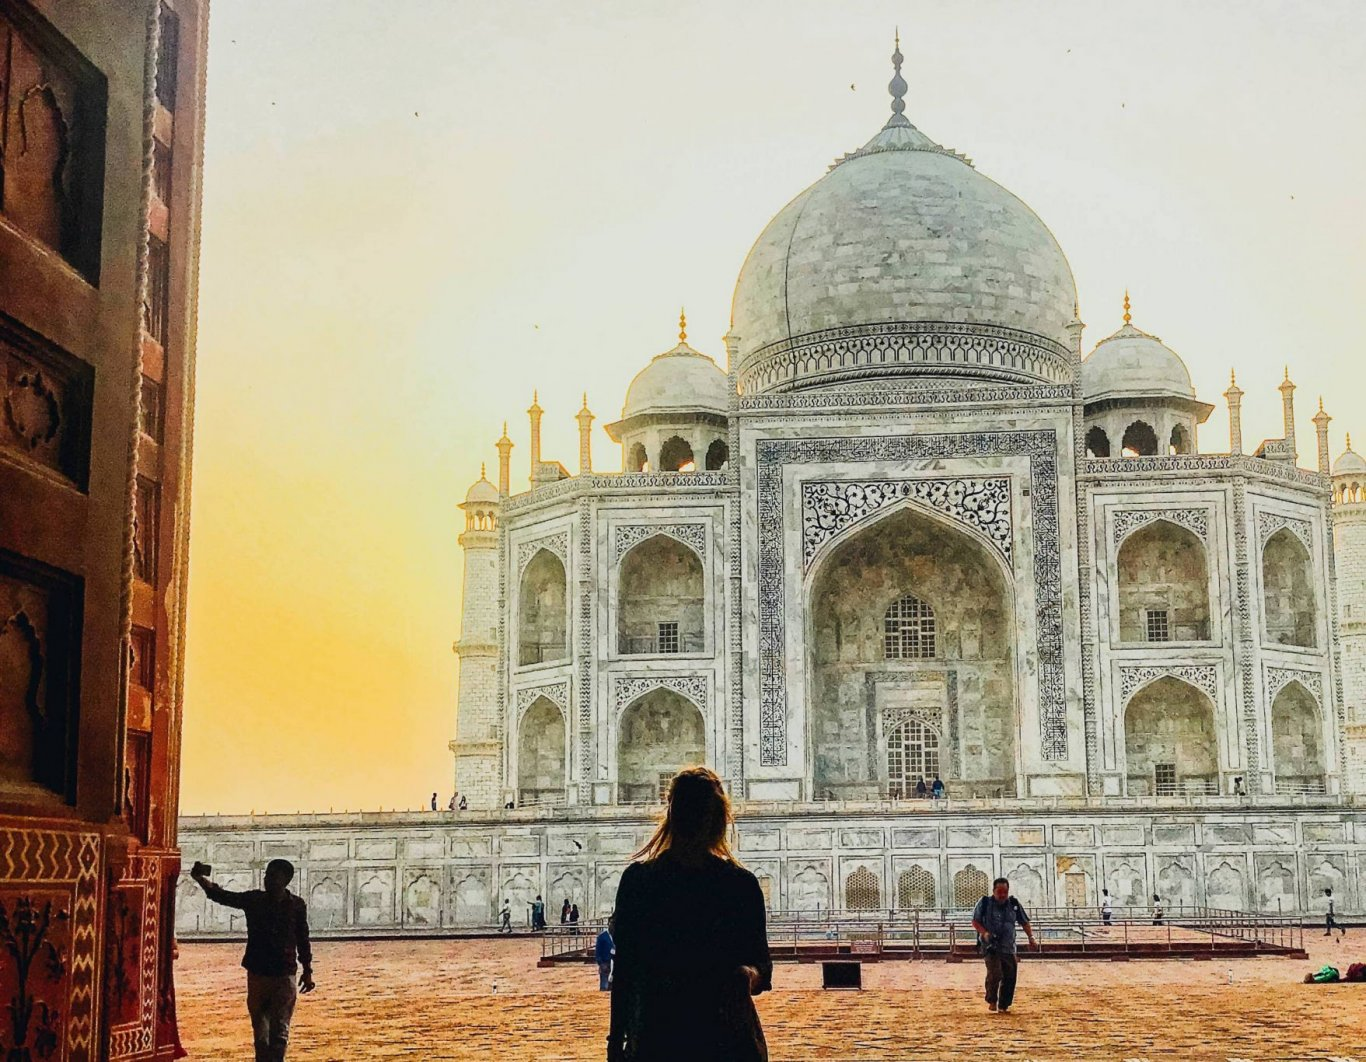 Taj Mahal, looking over the sunrise